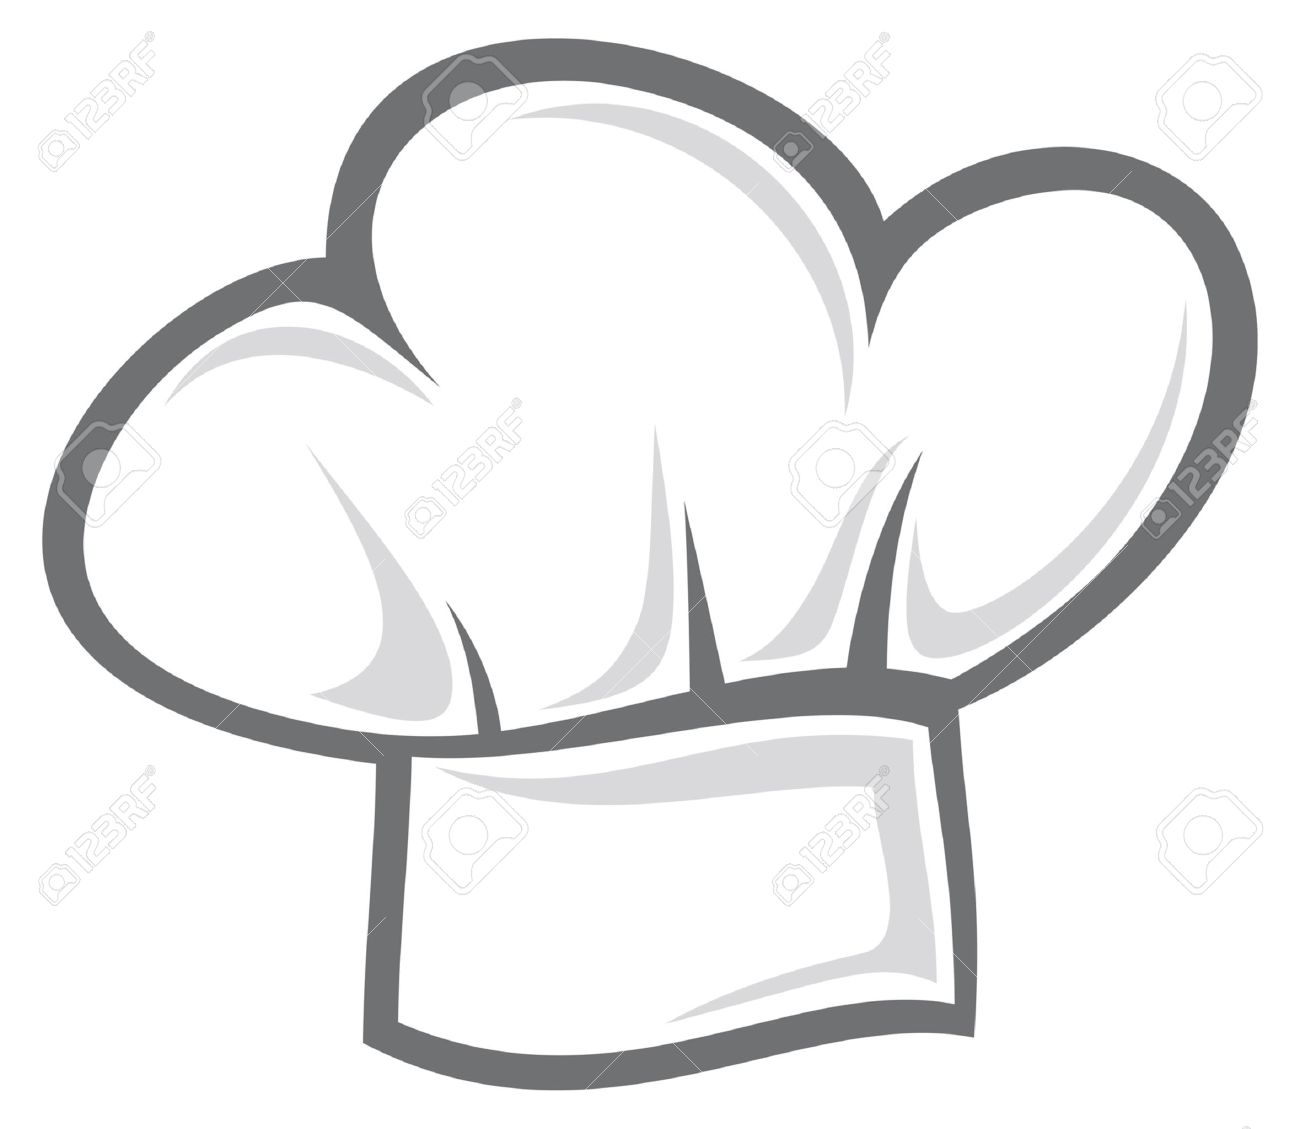 3ffa7c1c6cd2d White Chef Hat Royalty Free Cliparts, Vectors, And Stock ...